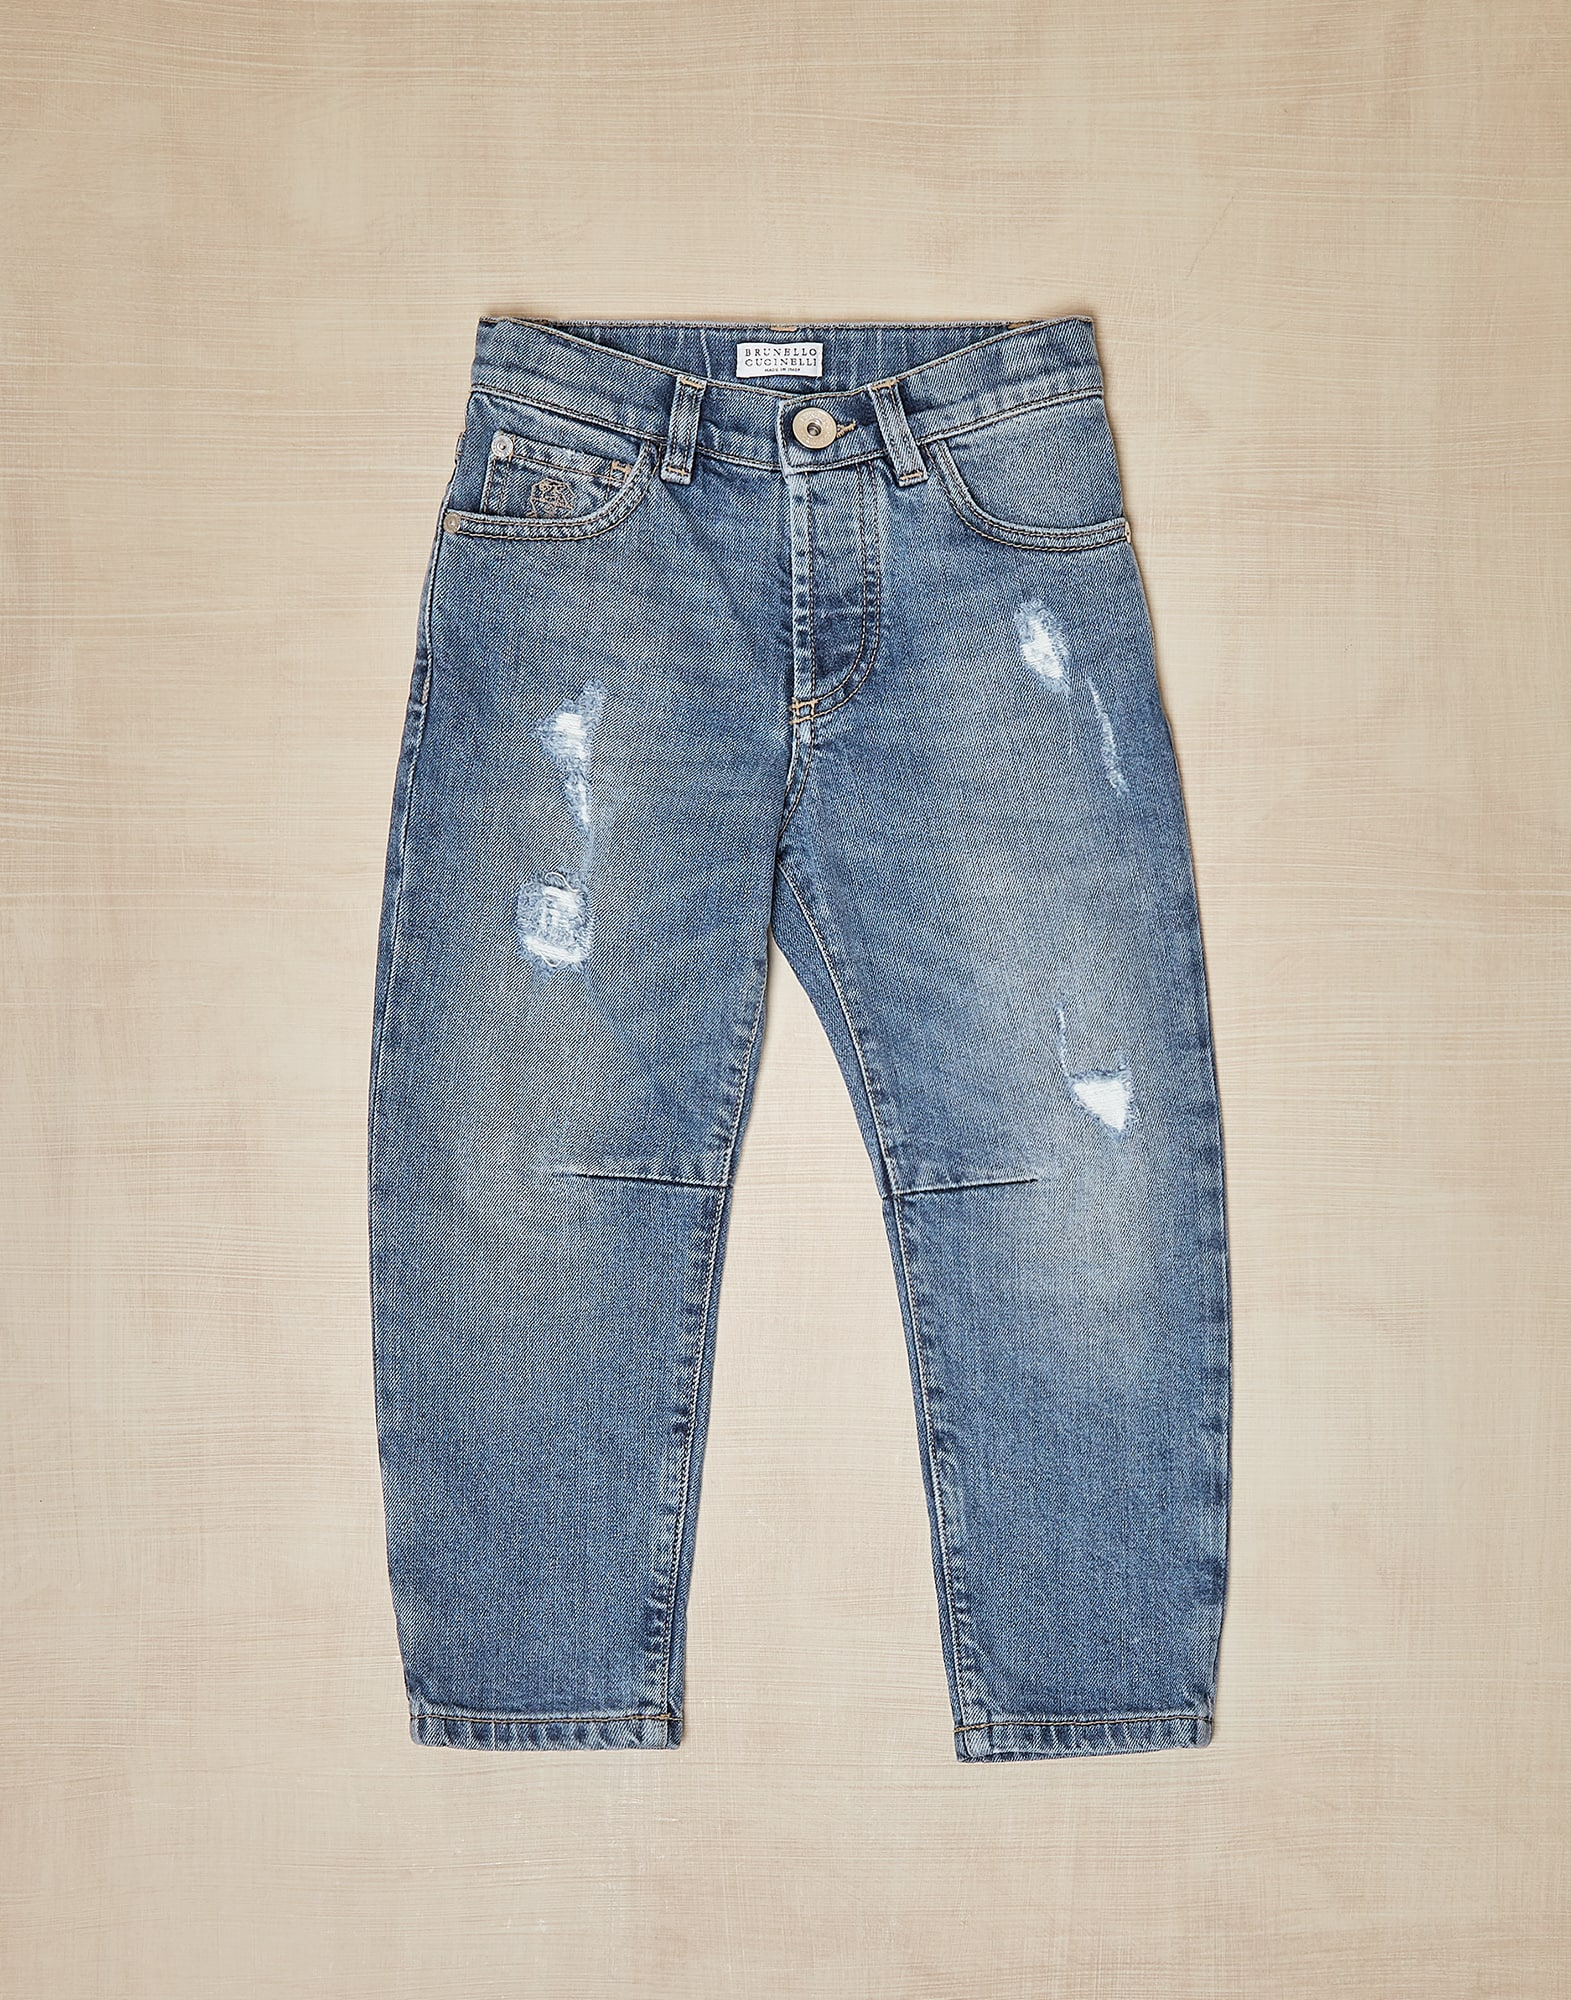 Denim trousers - Front view